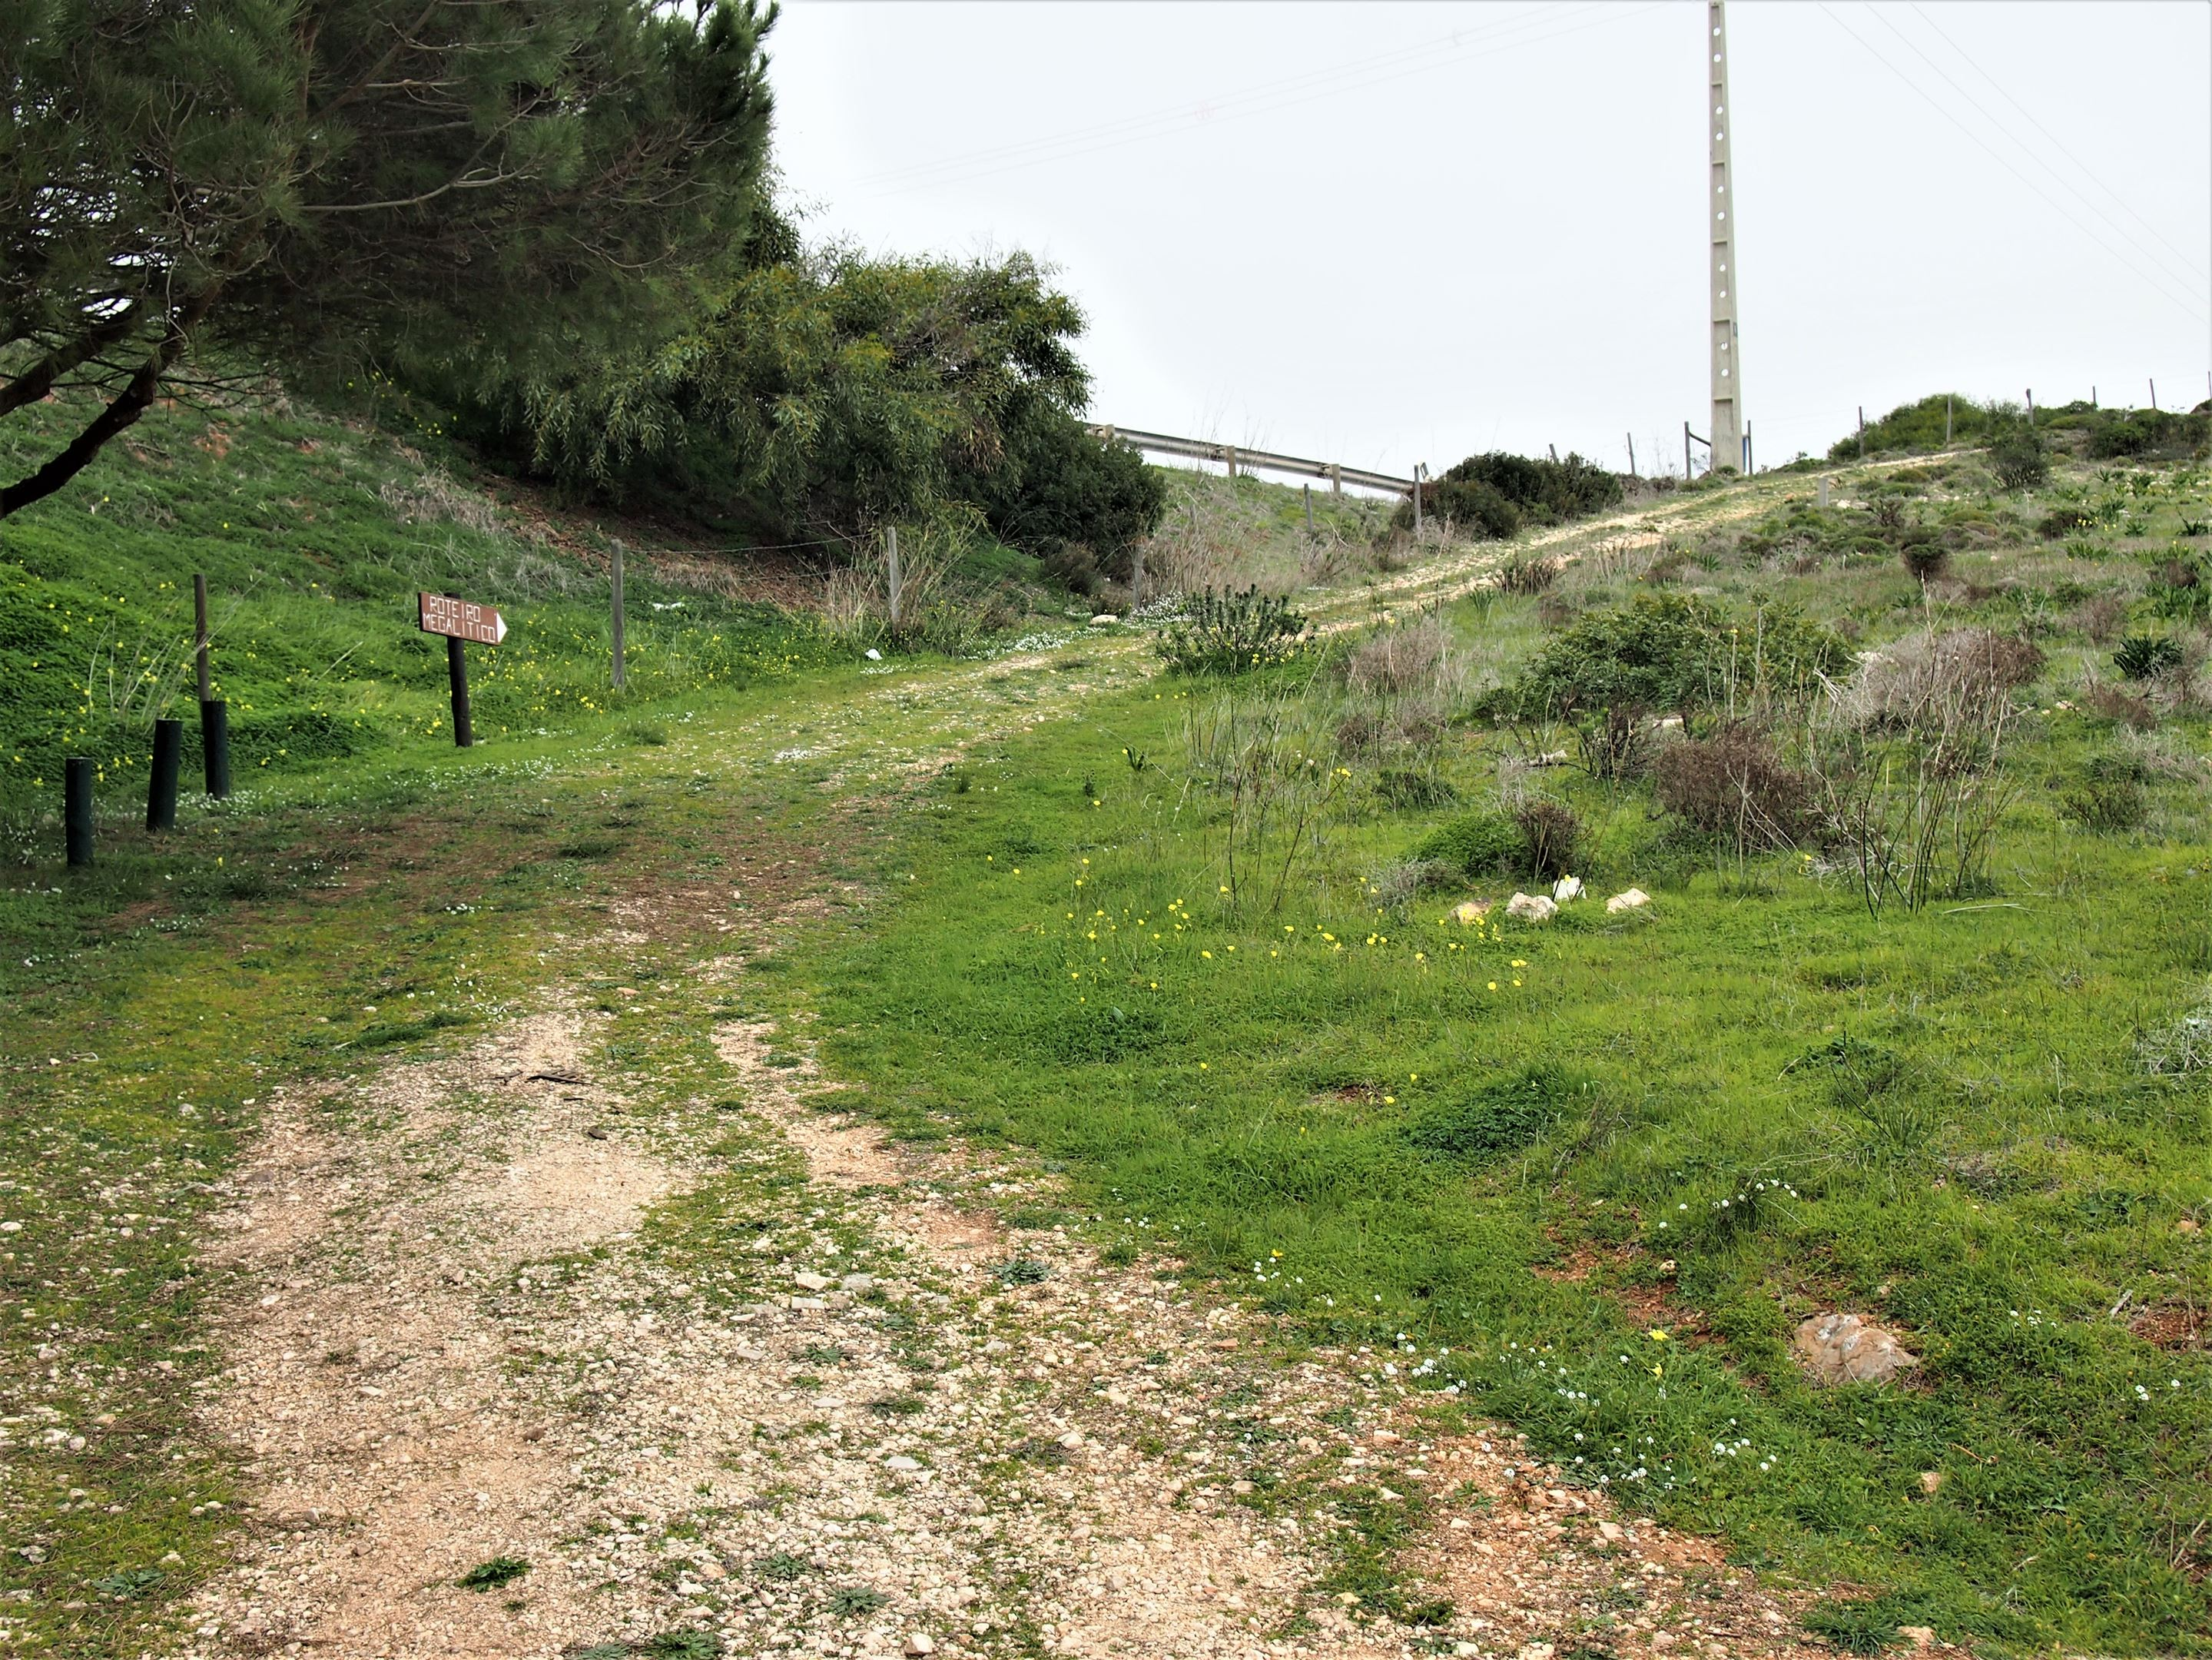 Locating the megalithic site at Monte dos Amantes in Vila do Bispo, west Algarve is not obvious. Follow this path up!